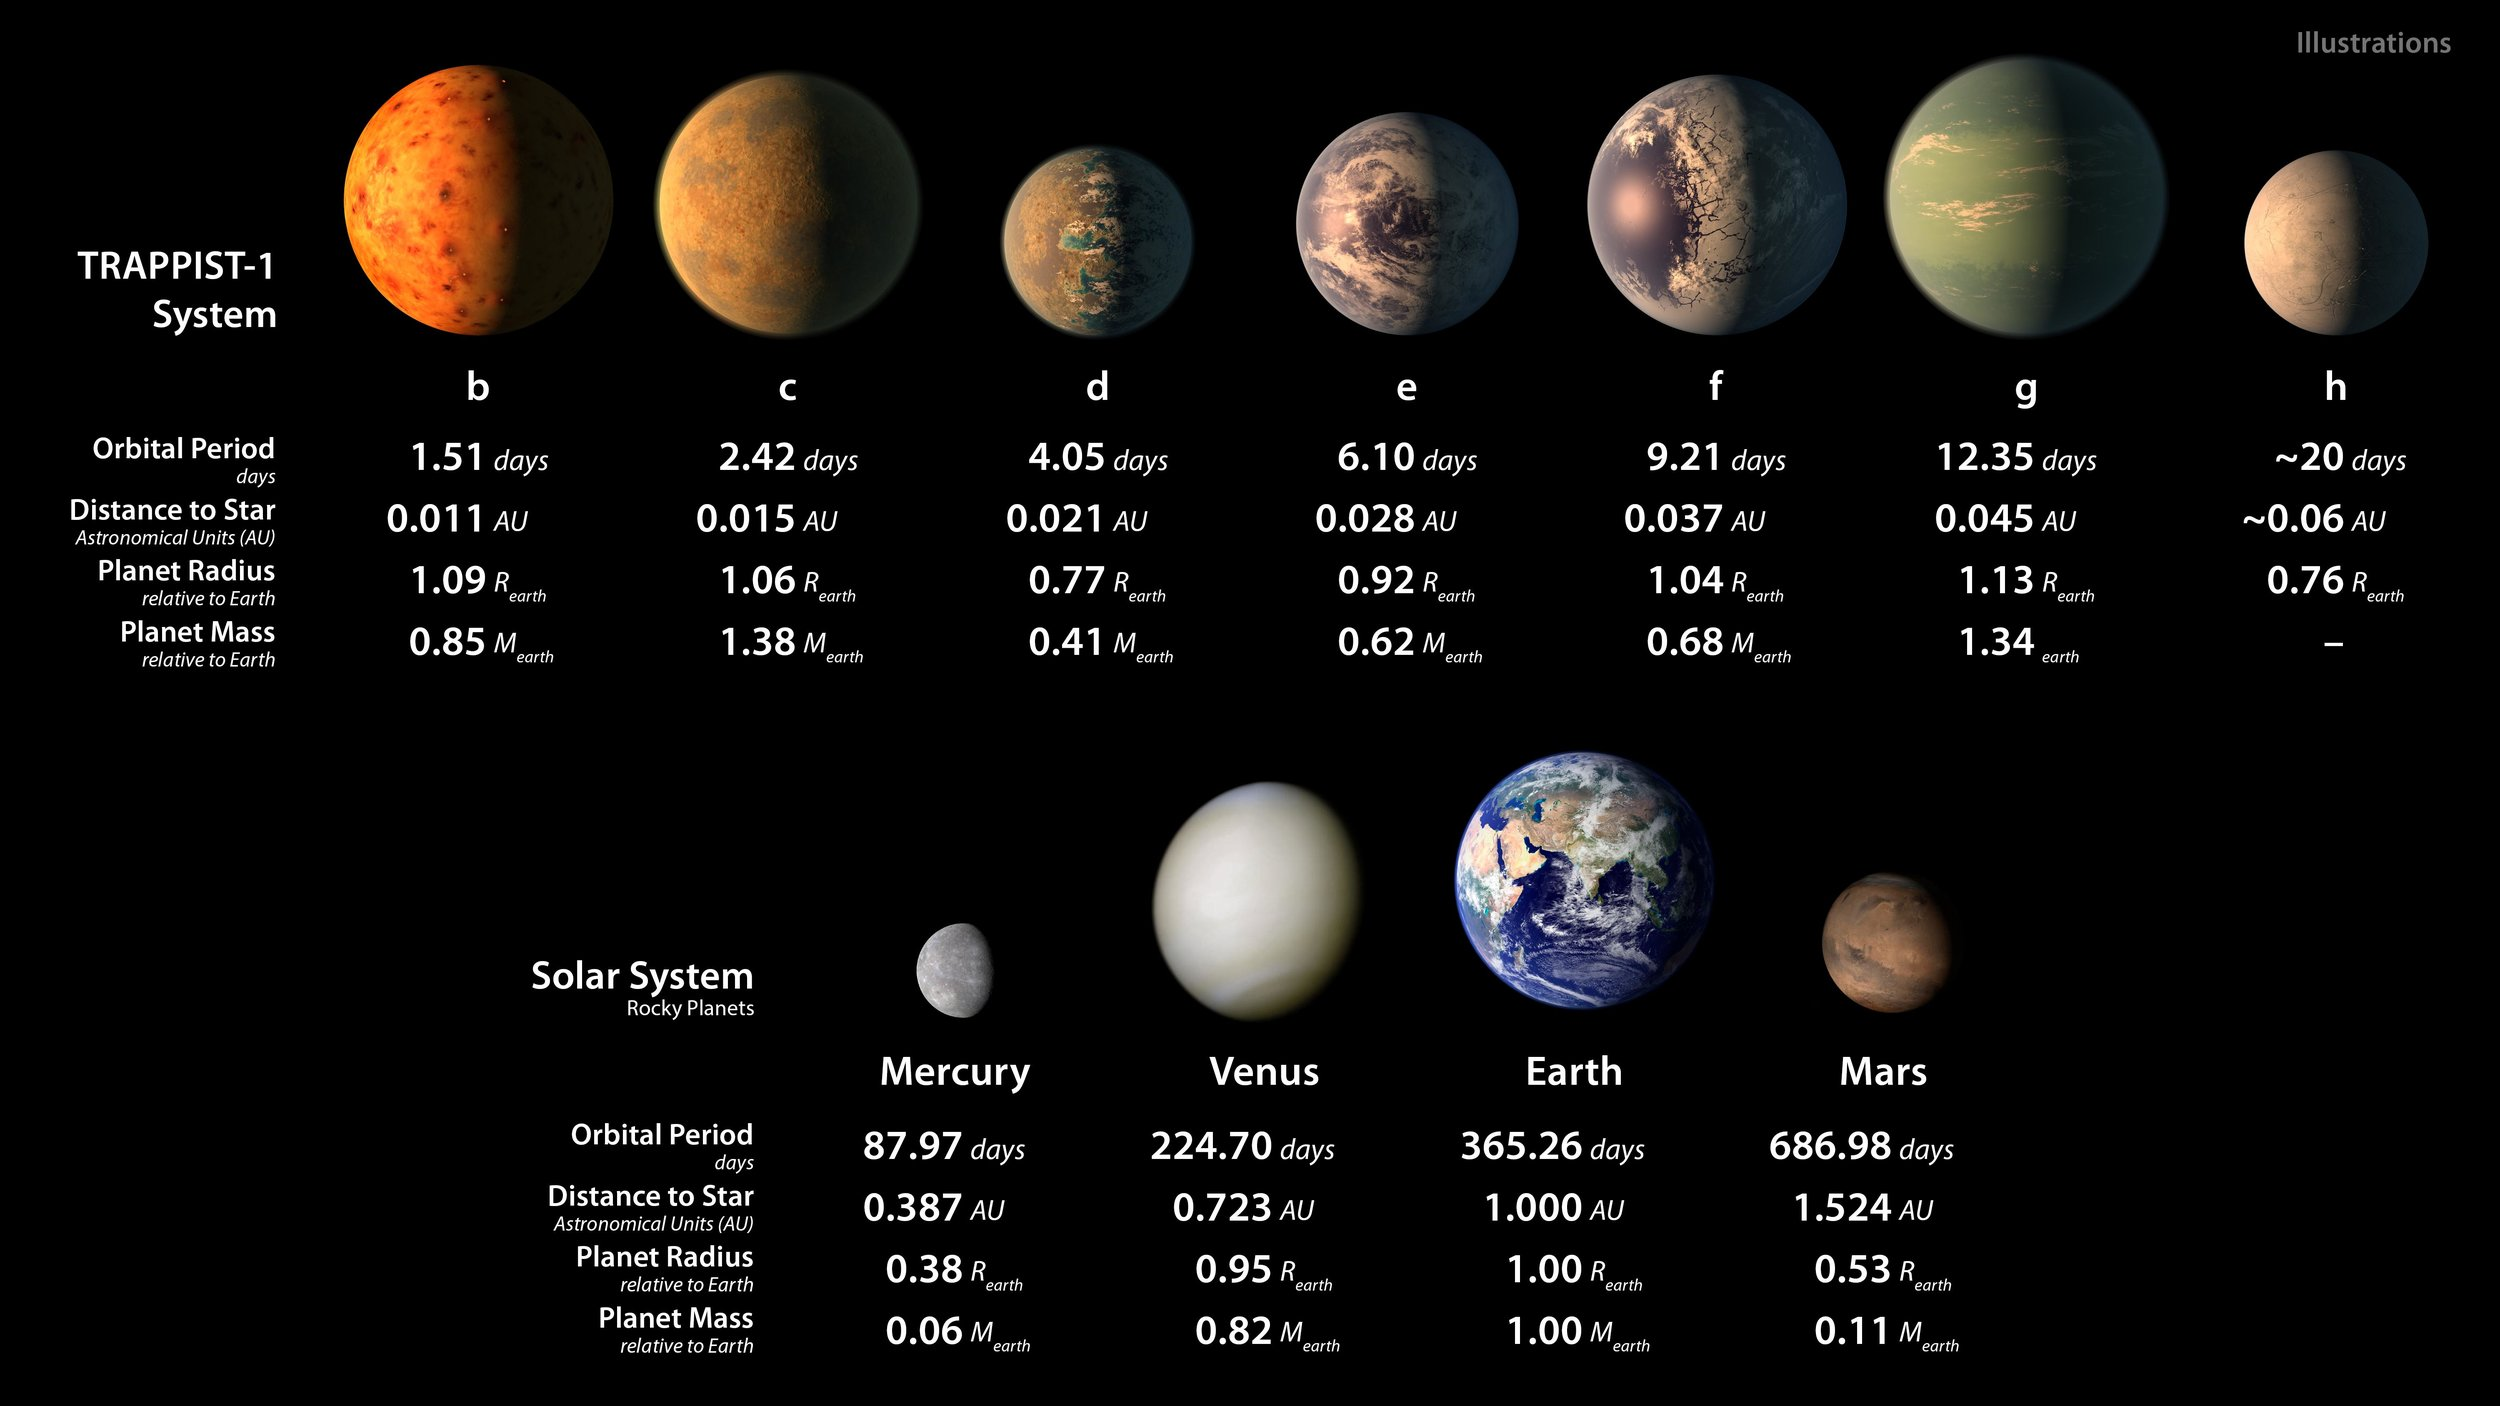 The TRAPPIST-1 planetary system, based on data about diameters, masses, and distances from the host star (artist's impression) Source: NASA/JPL